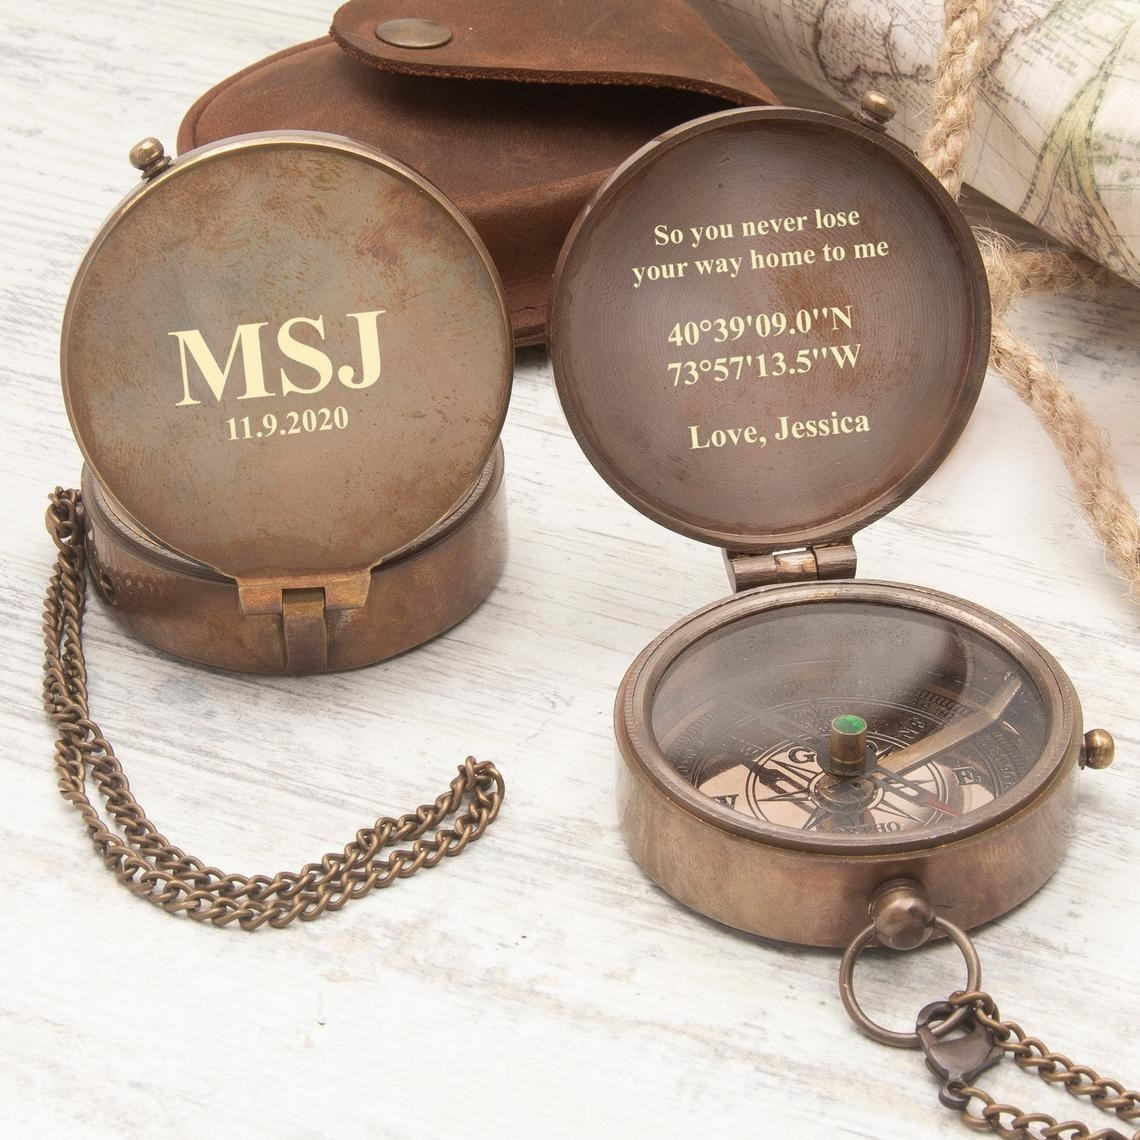 The front and inside of the compass with its leather case in the back ground